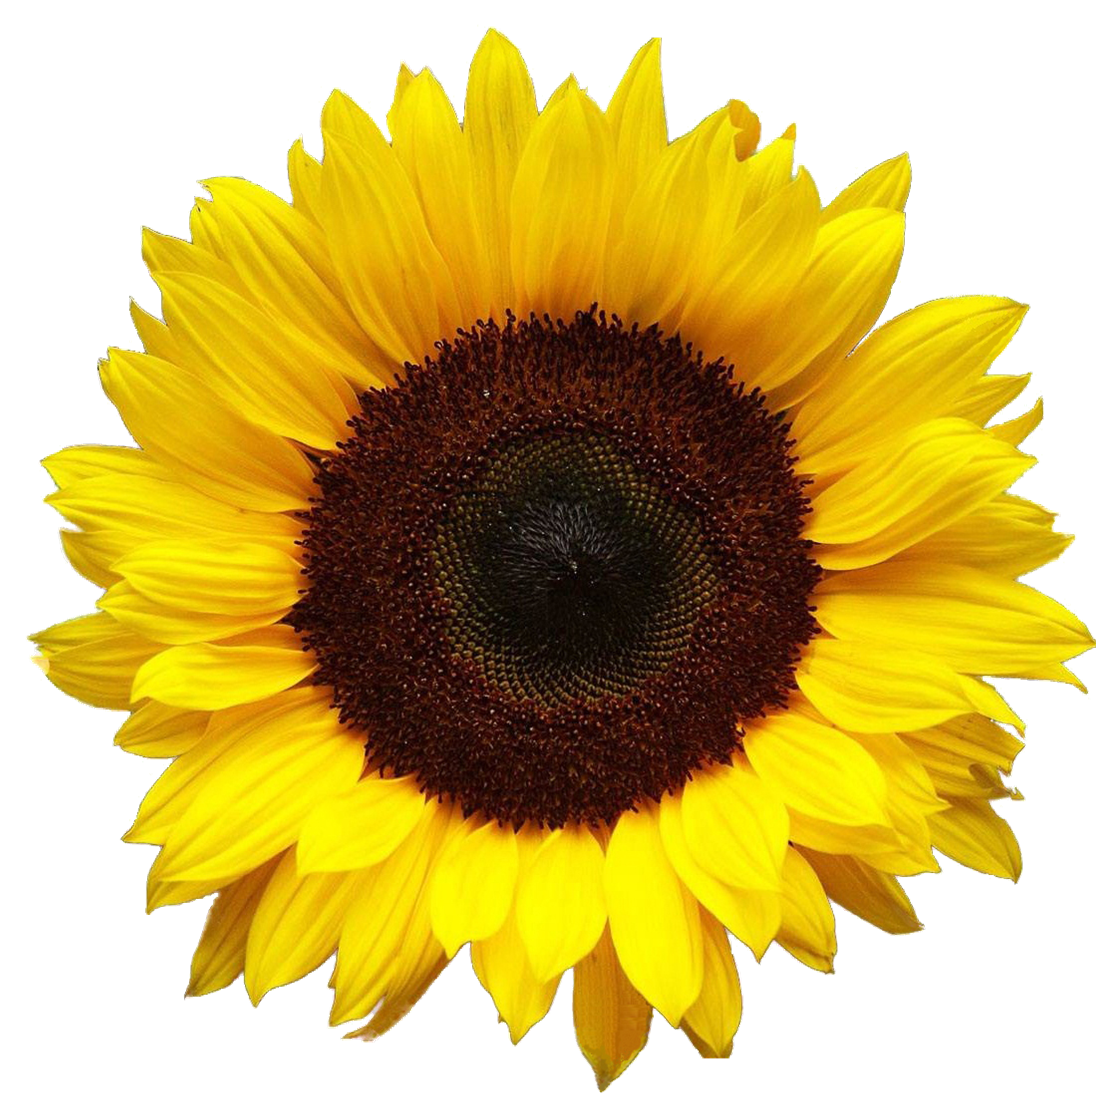 Top 5 Sunflowers on Etsy